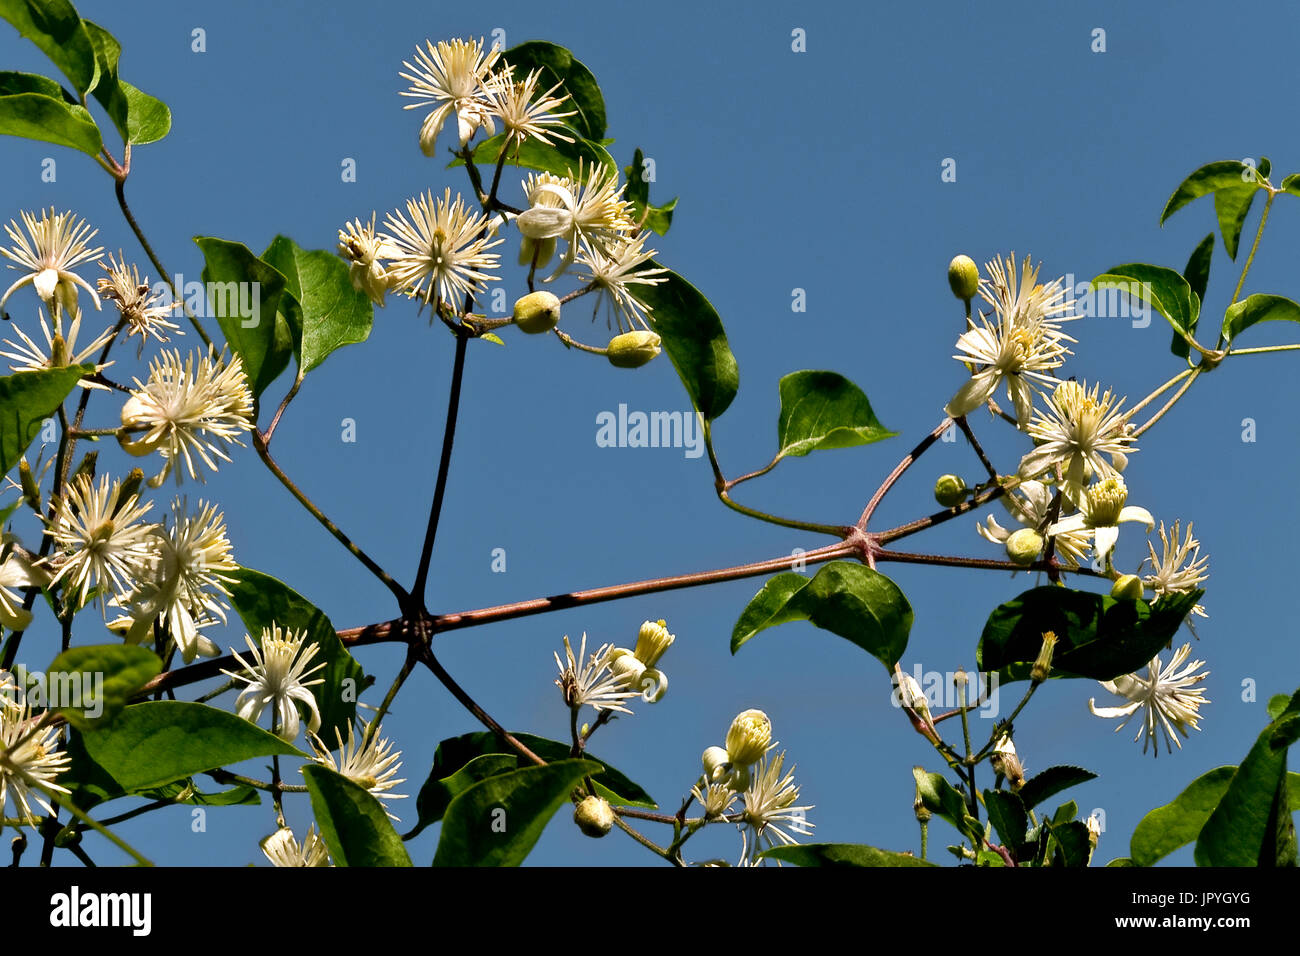 Old man?s beard in bloom in Catalonia - Spain - Stock Image